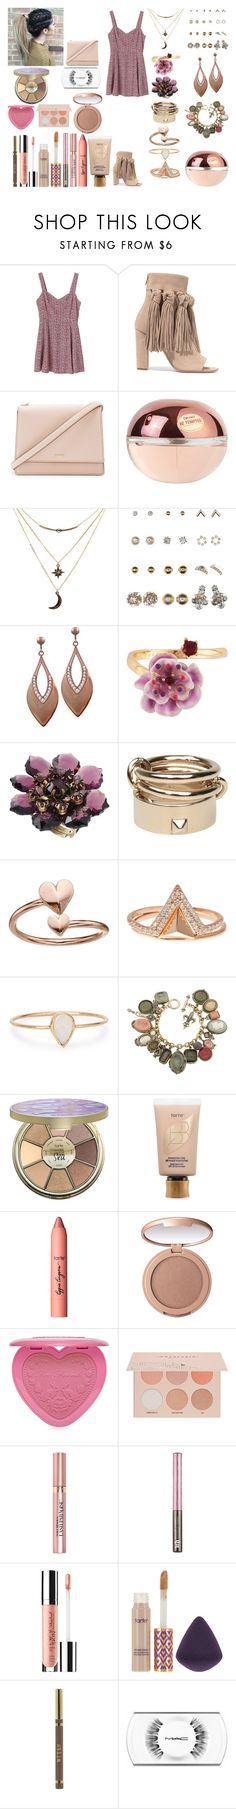 """""""Untitled #961"""" by asiebenthaler ❤ liked on Polyvore featuring Monki, Chloé, Kate Spade, Donna Karan, Charlotte Russe, Les Néréides, Michal Negrin, Valentino, Alex and Ani and Lucky Brand"""